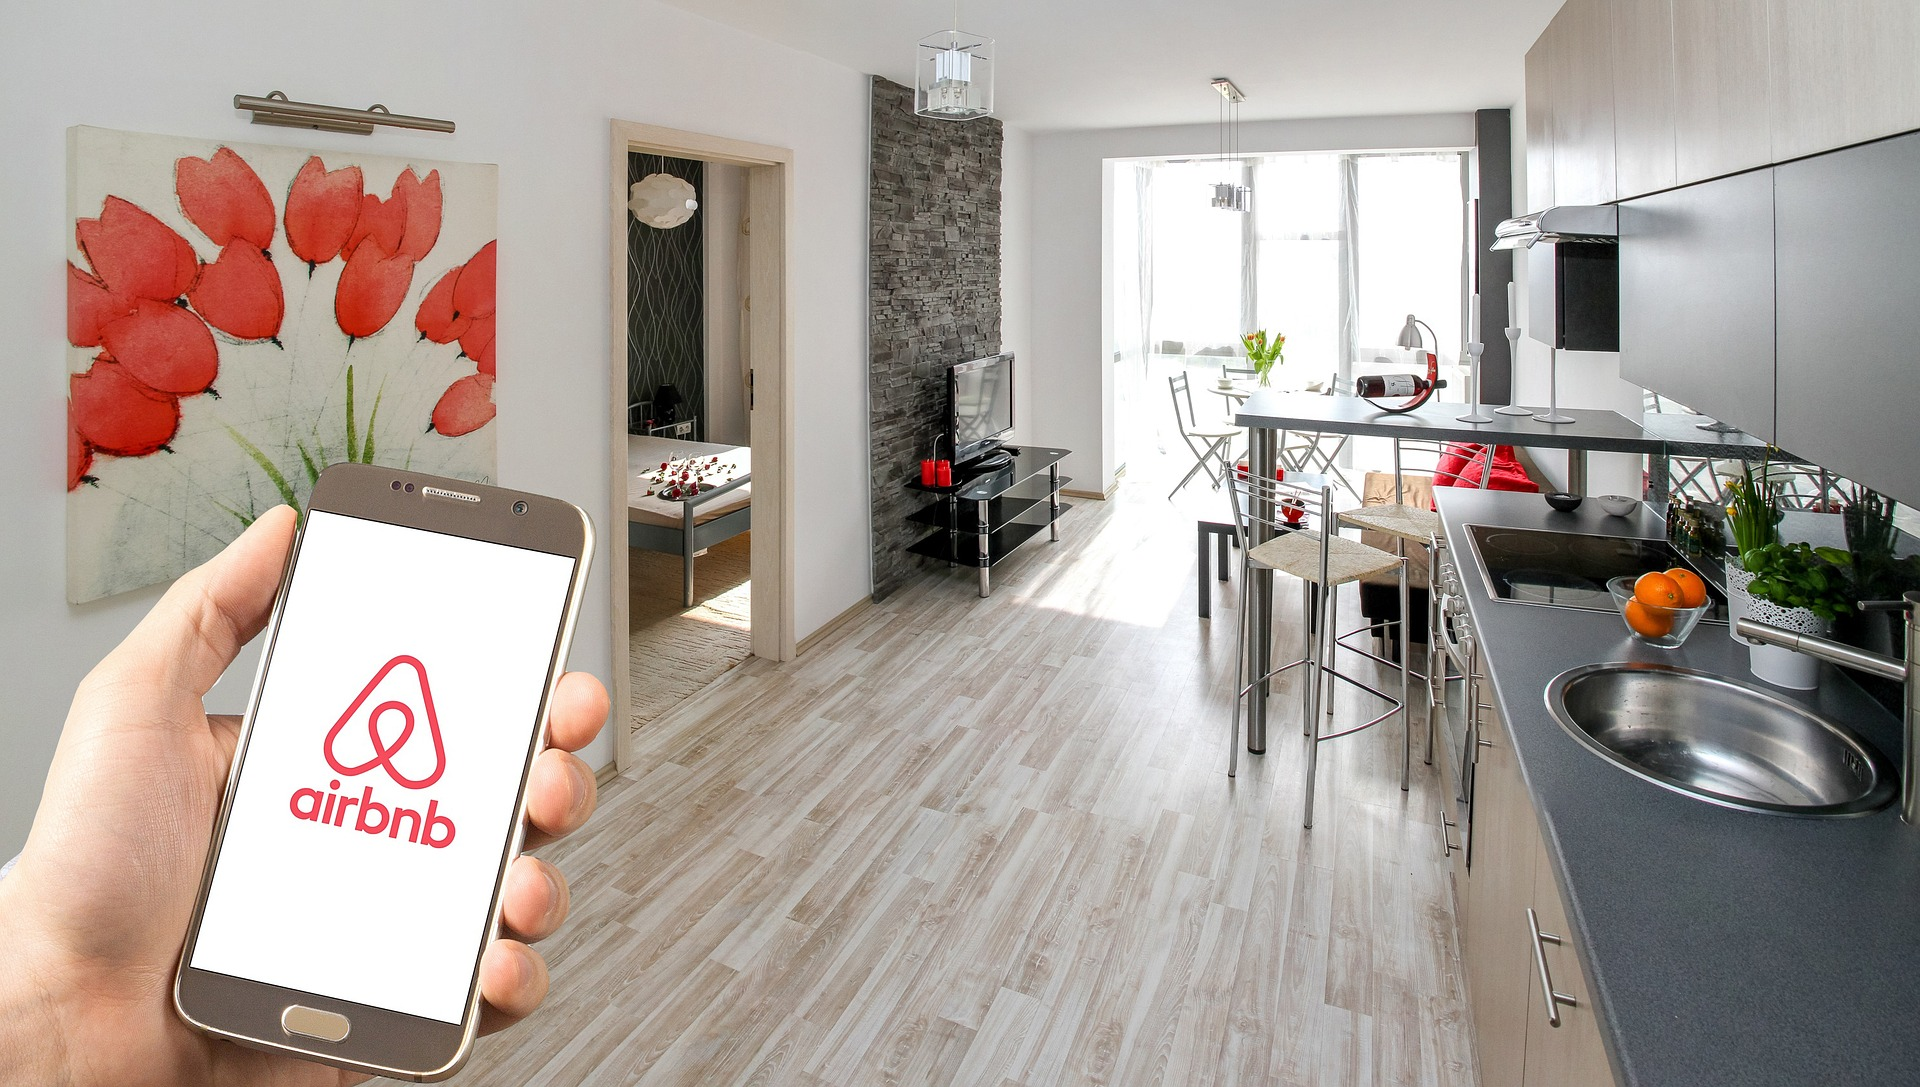 airbnb-3399753_1920